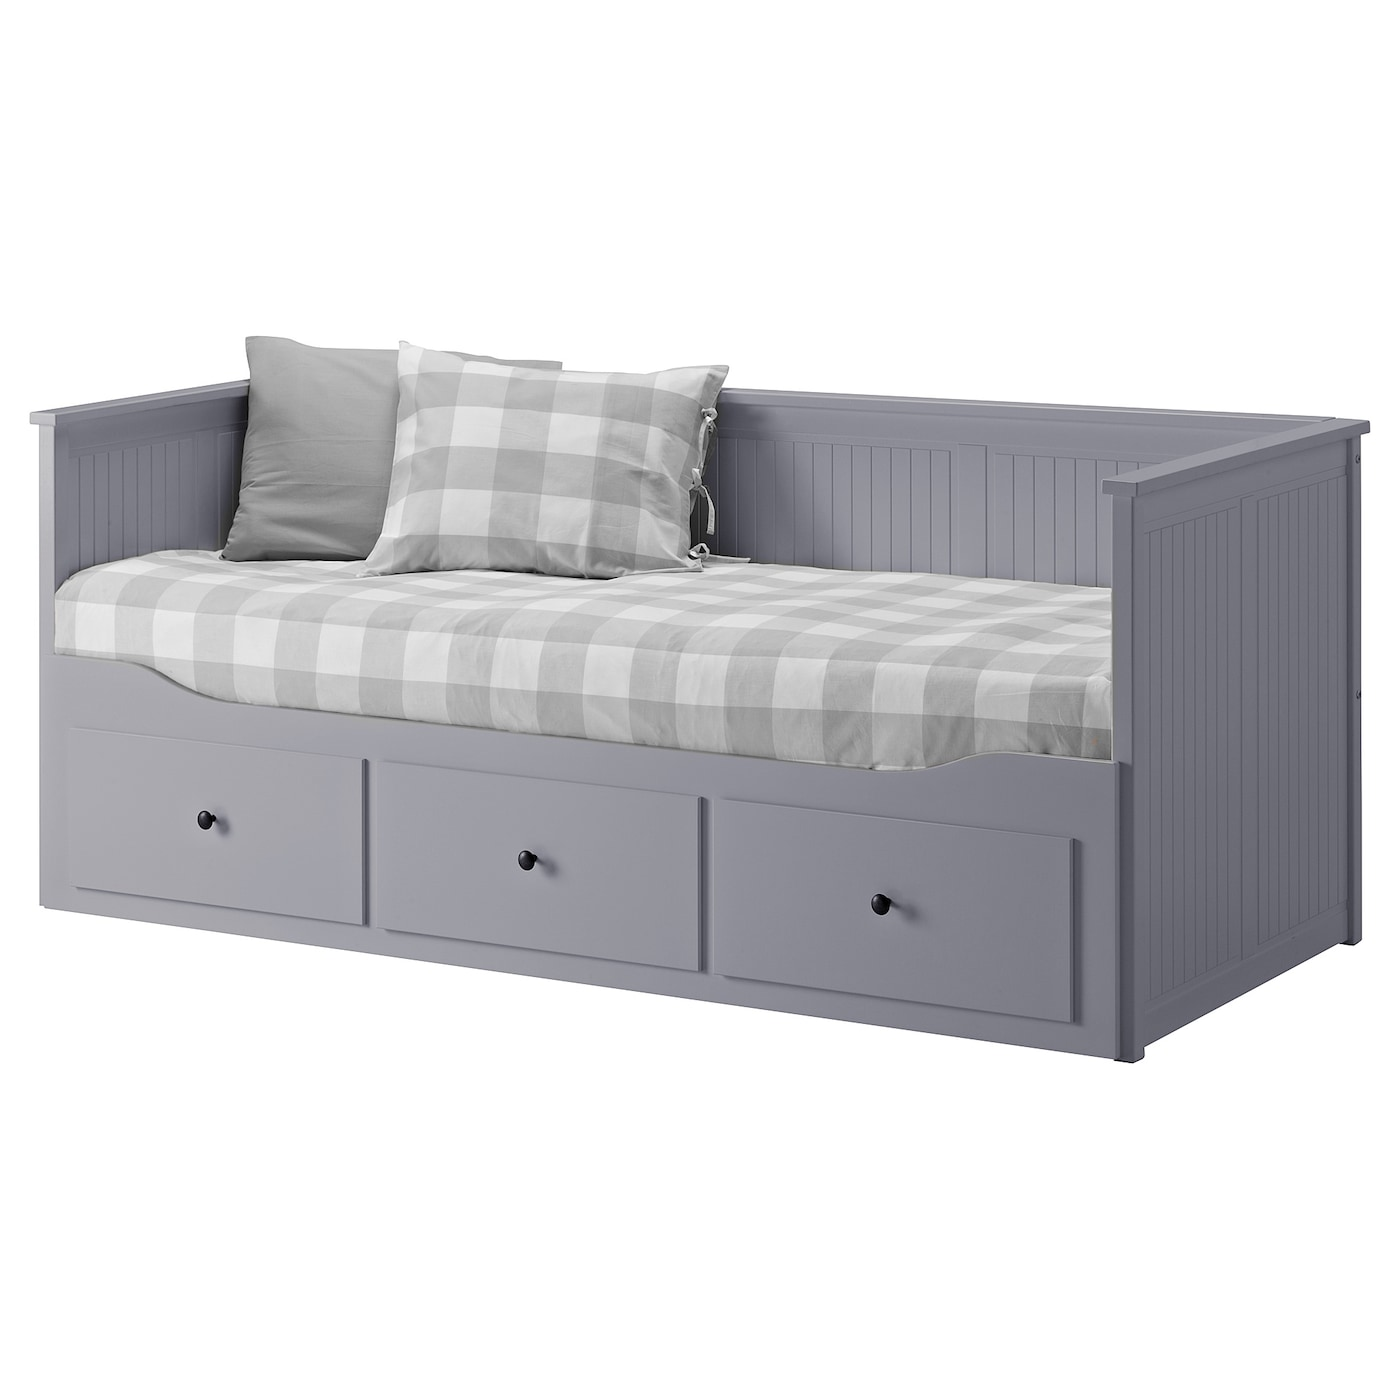 HEMNES Day bed frame with 3 drawers Grey 80x200 cm IKEA